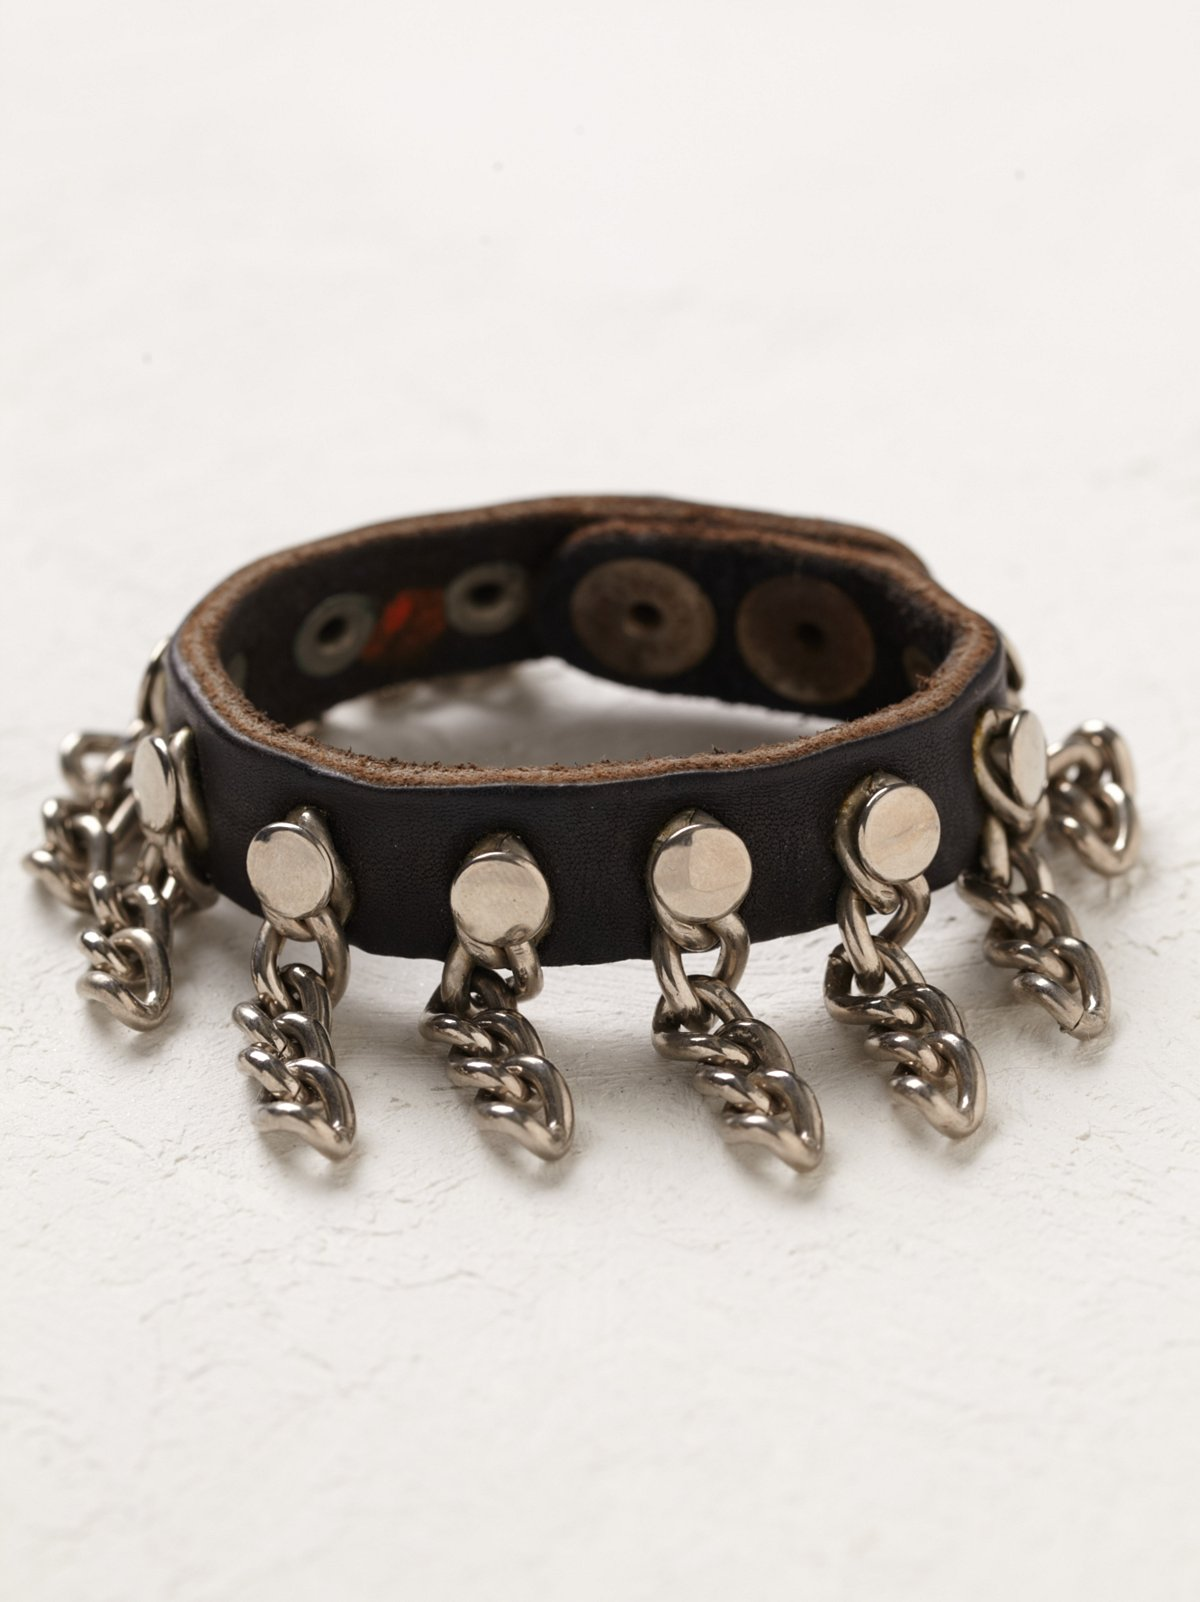 Vintage Leather Chain Cuff